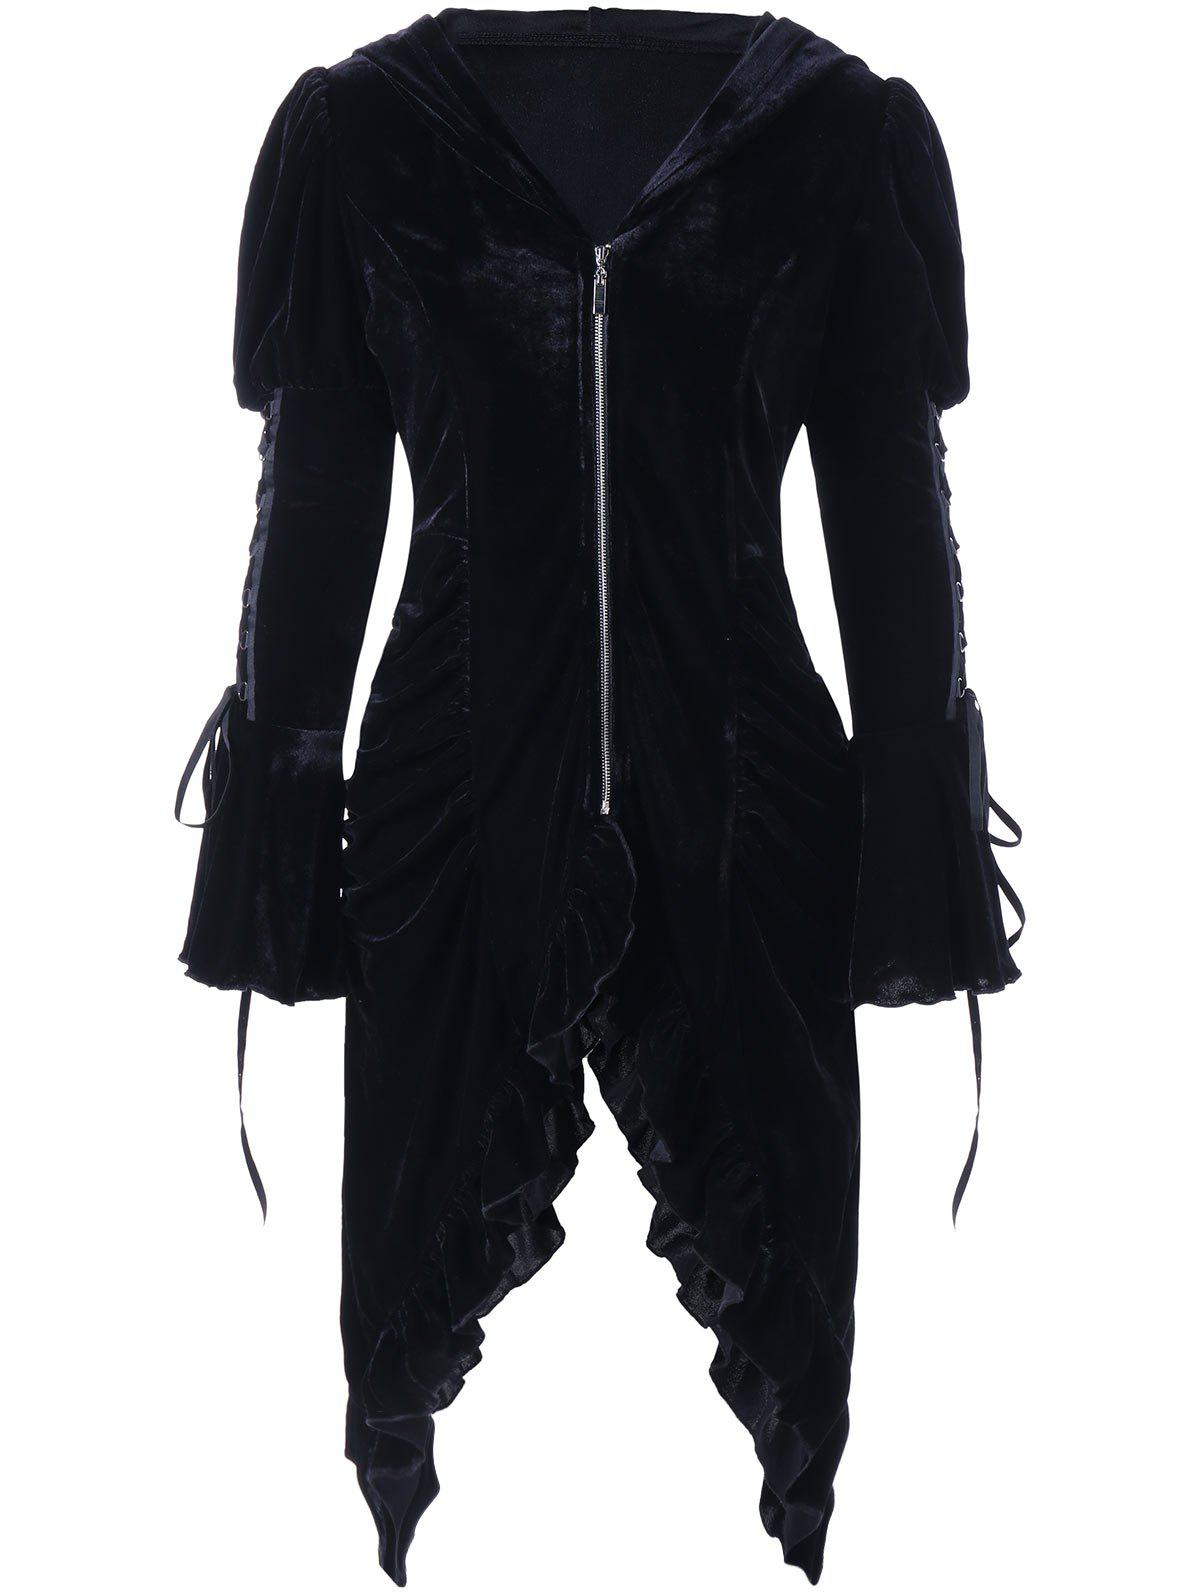 Ruched Flounced Lace Up Hooded CoatWOMEN<br><br>Size: 2XL; Color: BLACK; Clothes Type: Others; Material: Polyester; Type: Slim; Shirt Length: Long; Sleeve Length: Full; Collar: Hooded; Pattern Type: Solid; Style: Novelty; Season: Fall,Spring; Weight: 0.6300kg; Package Contents: 1 x Coat;